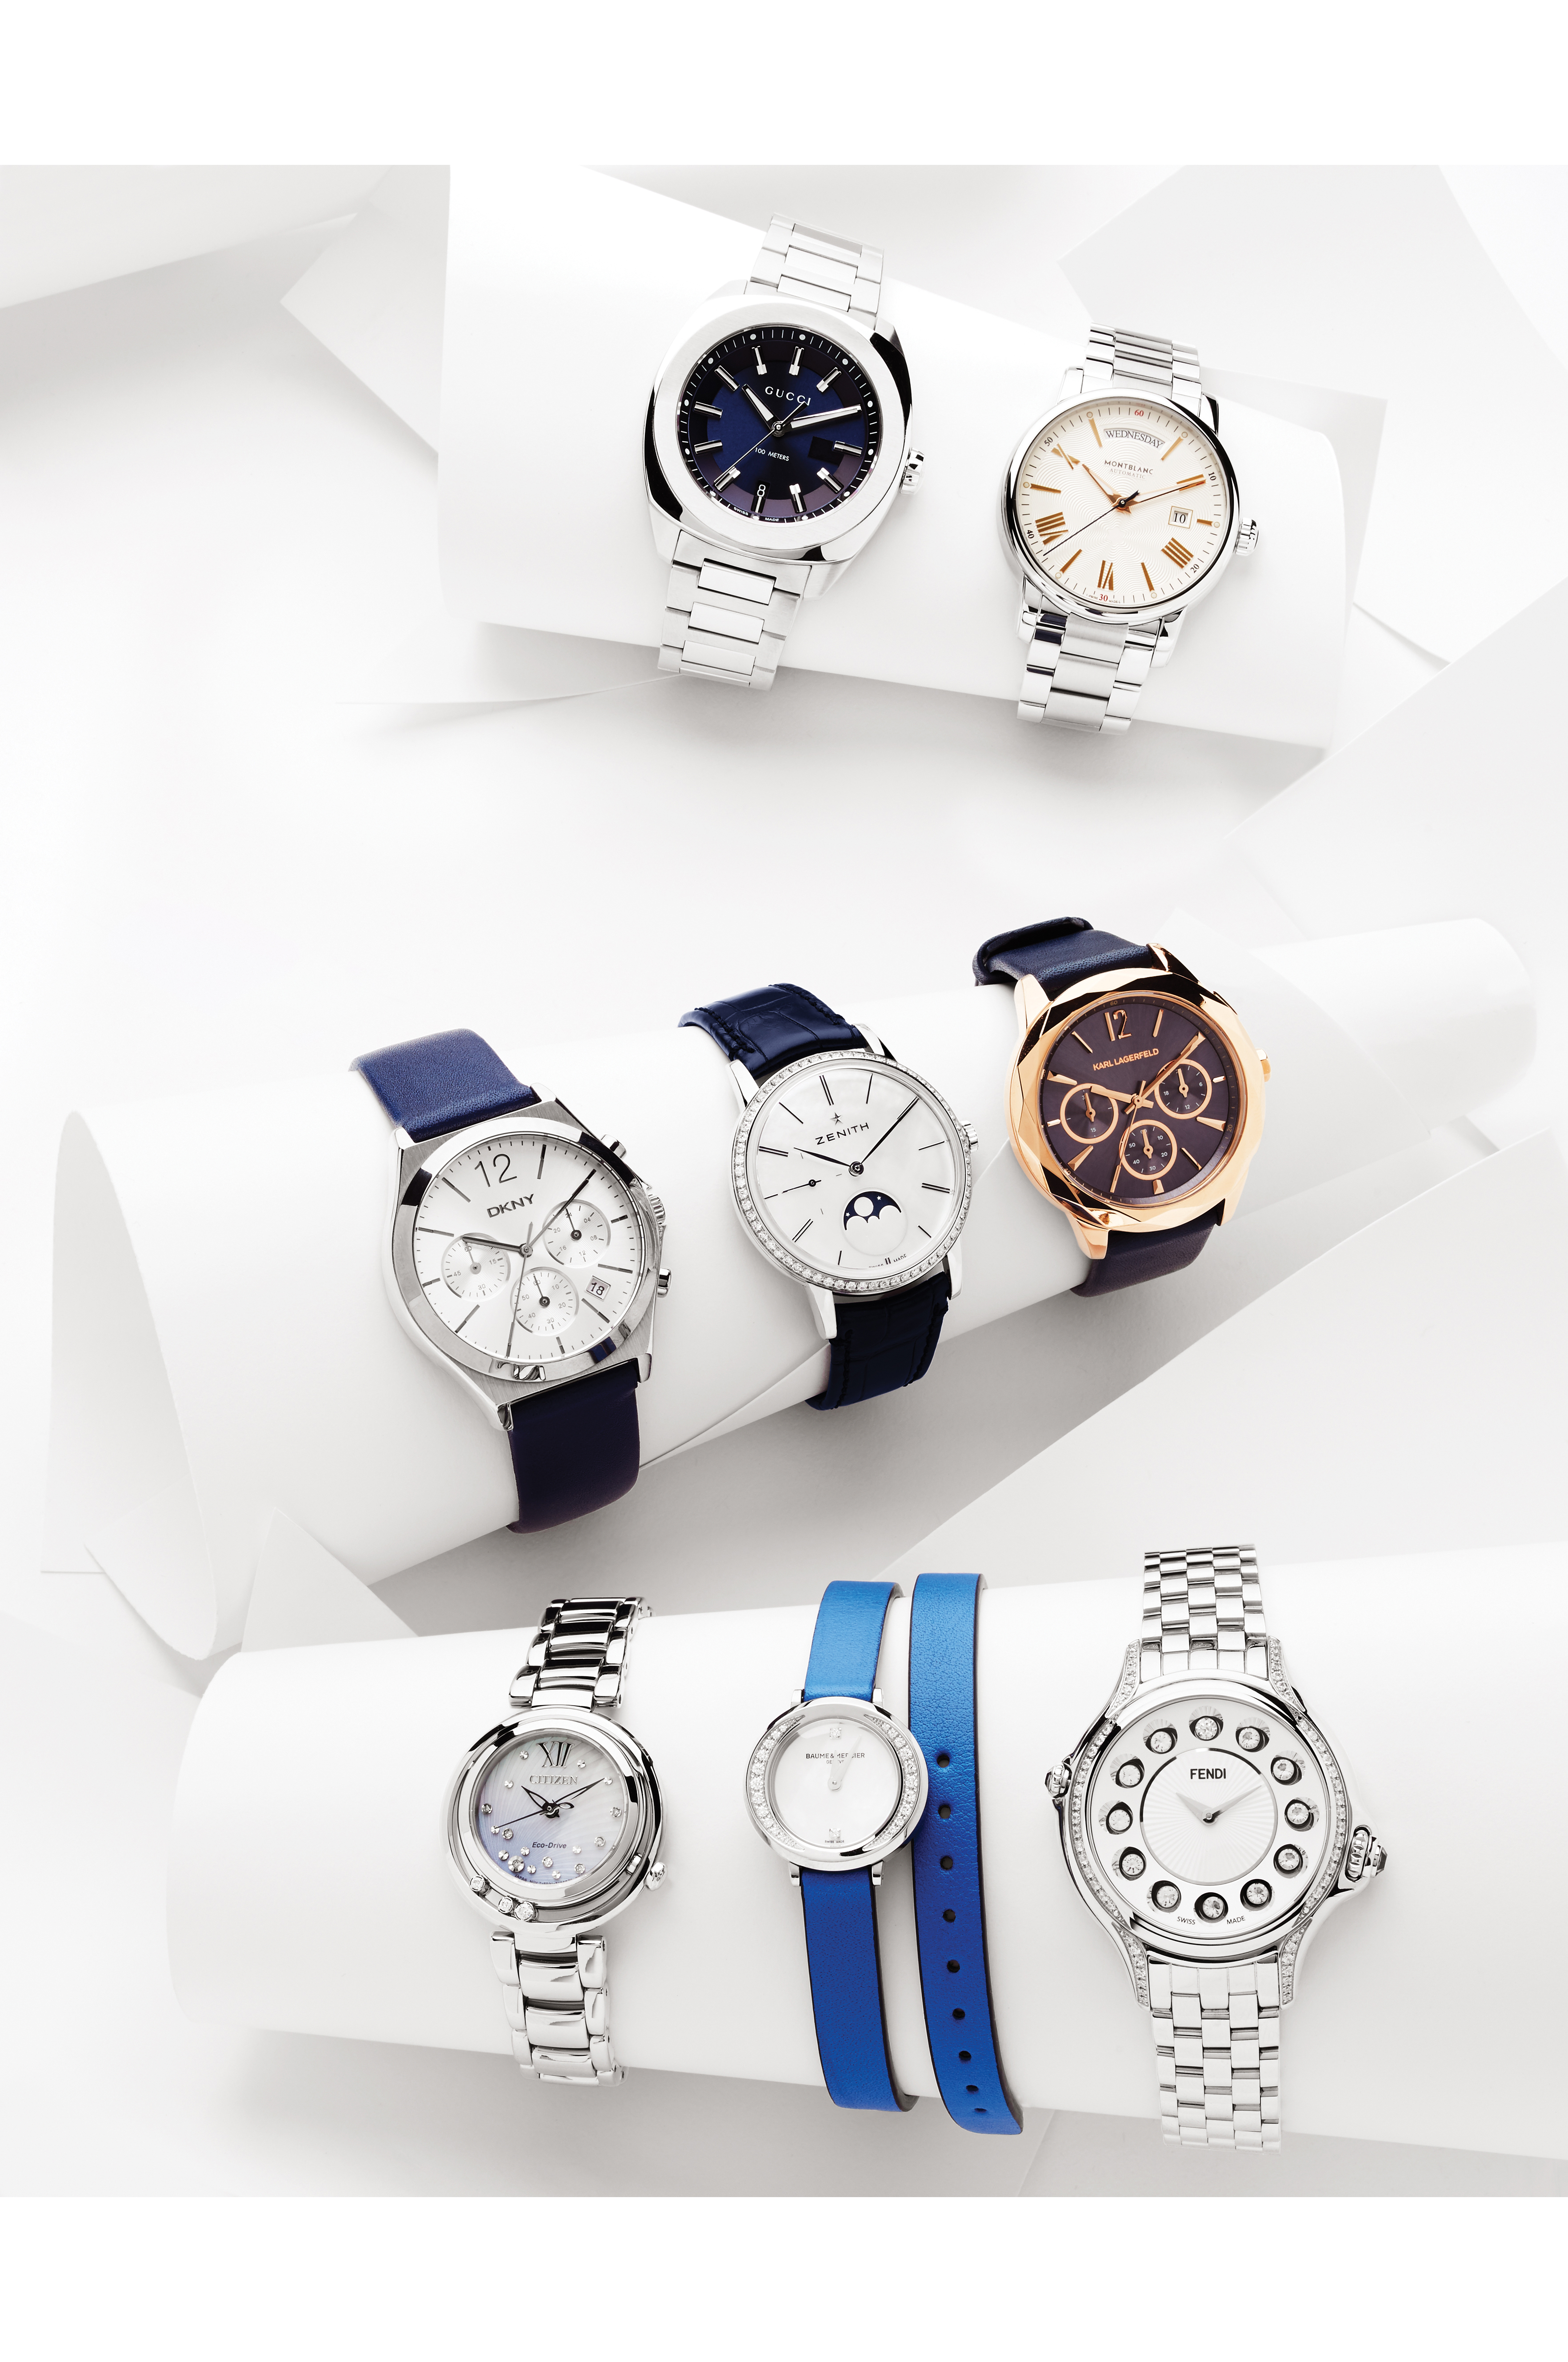 Top row (left to right): Gucci, Montblanc. Middle row: DKNY, Zenith (with diamond bezel), Karl Lagerfeld. Bottom row: Citizen, Baume & Mercier, Fendi (all with diamond bezels).